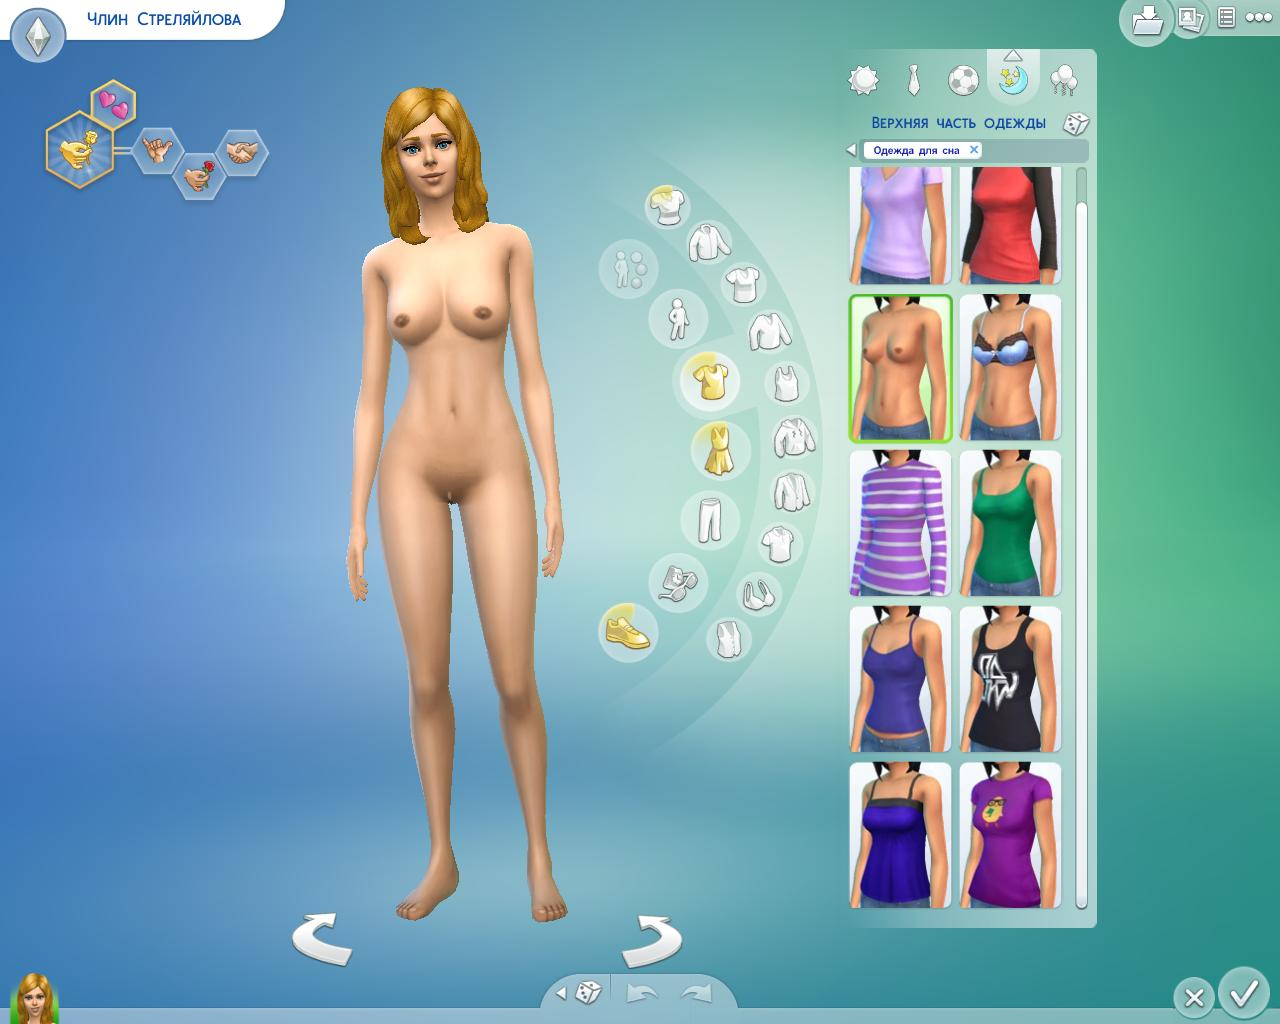 Porn mod the sims 4 naked thumbs